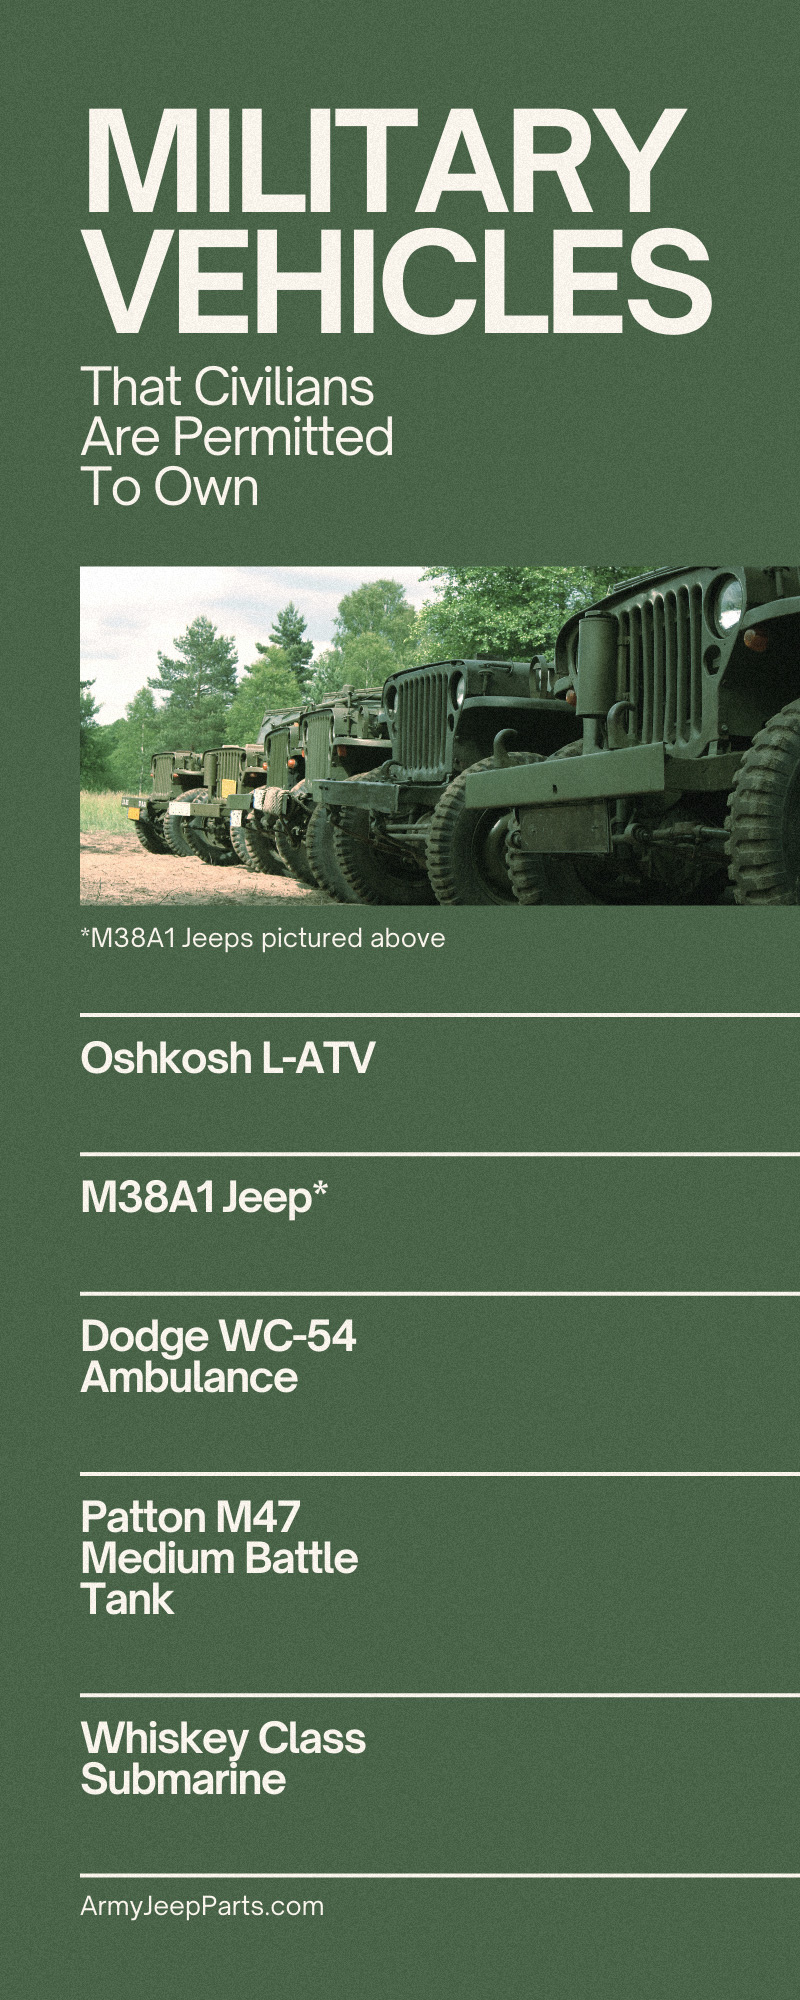 Military Vehicles That Civilians Are Permitted To Own